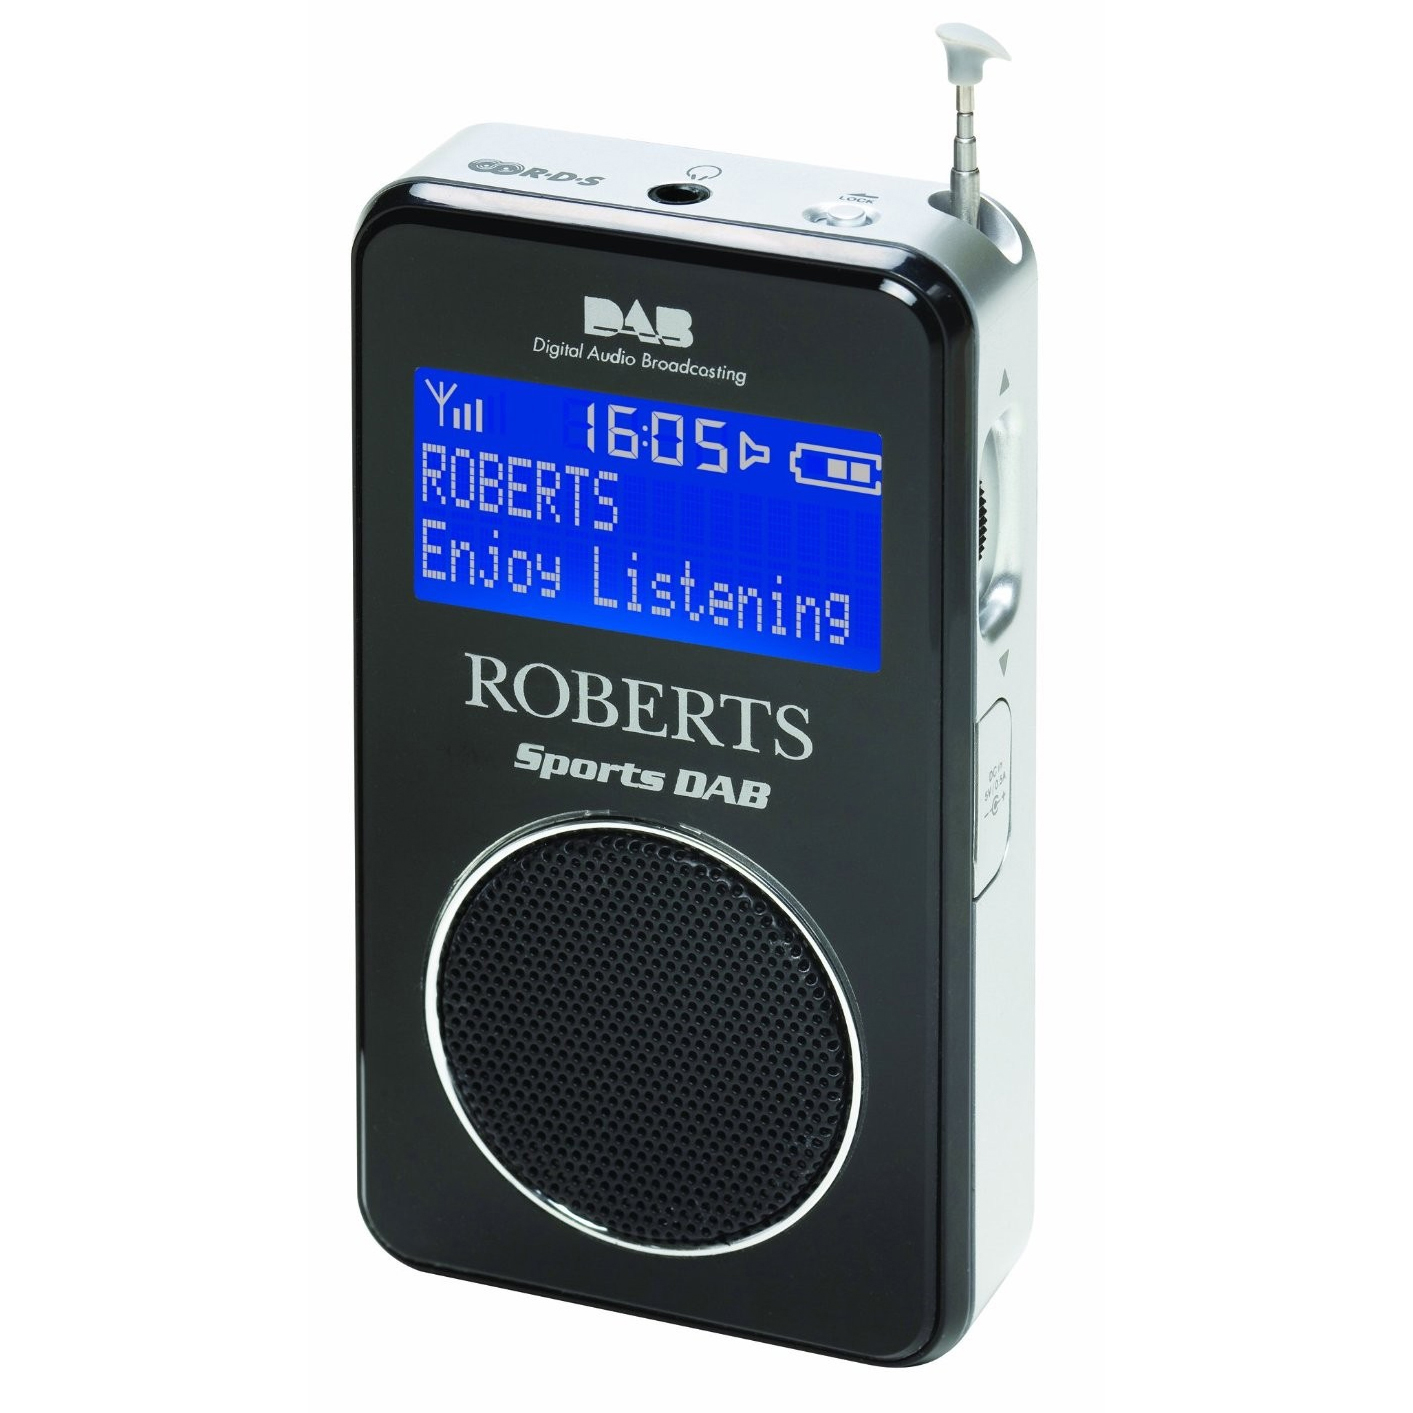 Roberts Sports DAB II Portable Pocket Radio